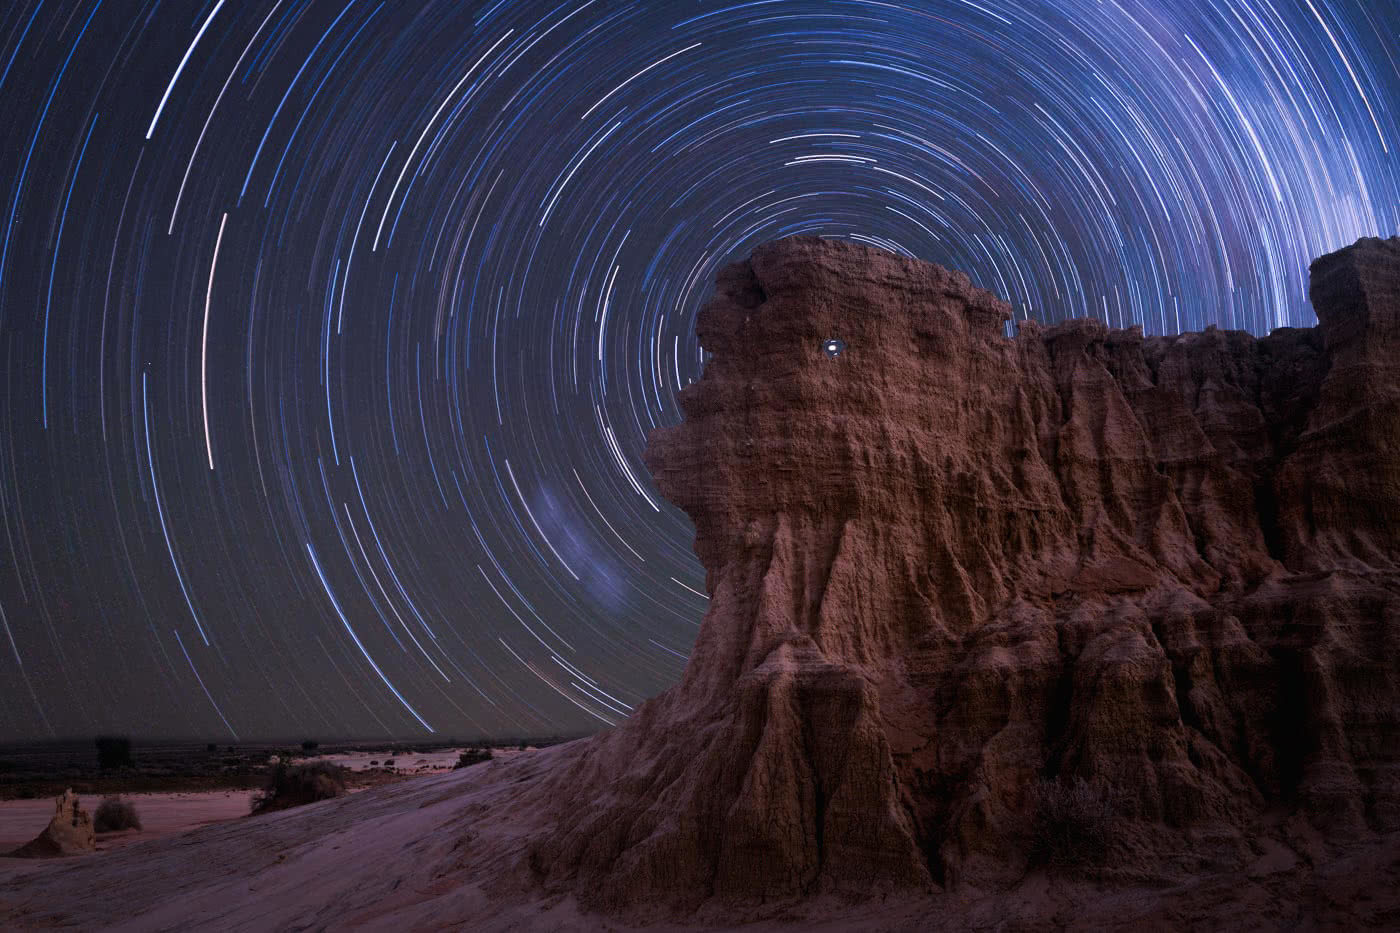 How To Take Photos in Mungo National Park, Conor Moore, Walls of China, stars, astrophotography, night, sand dunes, cliffs